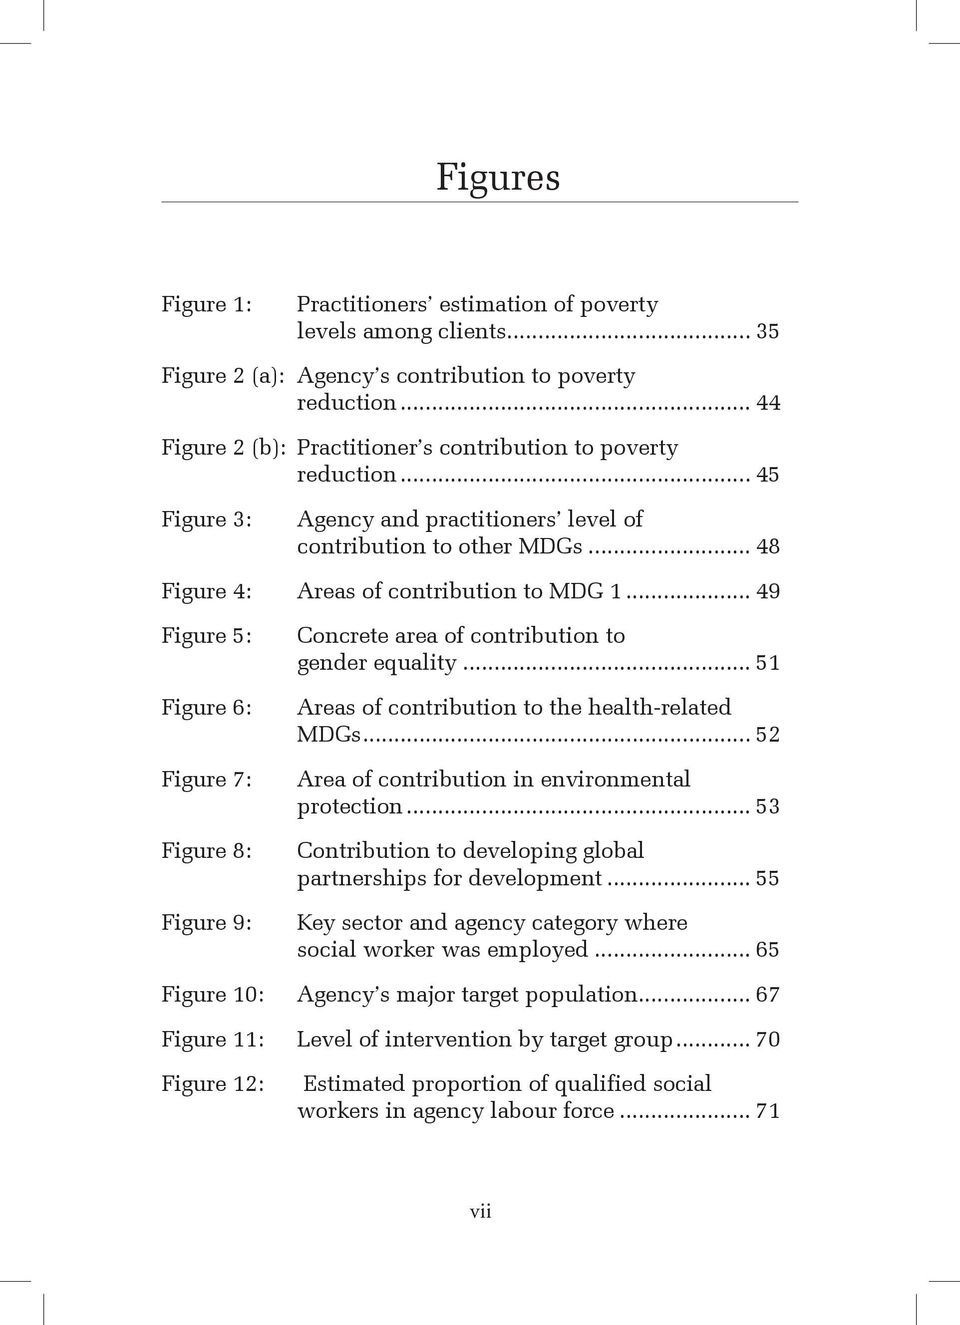 .. 49 Figure 5: Concrete area of contribution to gender equality... 51 Figure 6: Areas of contribution to the health-related MDGs... 52 Figure 7: Area of contribution in environmental protection.